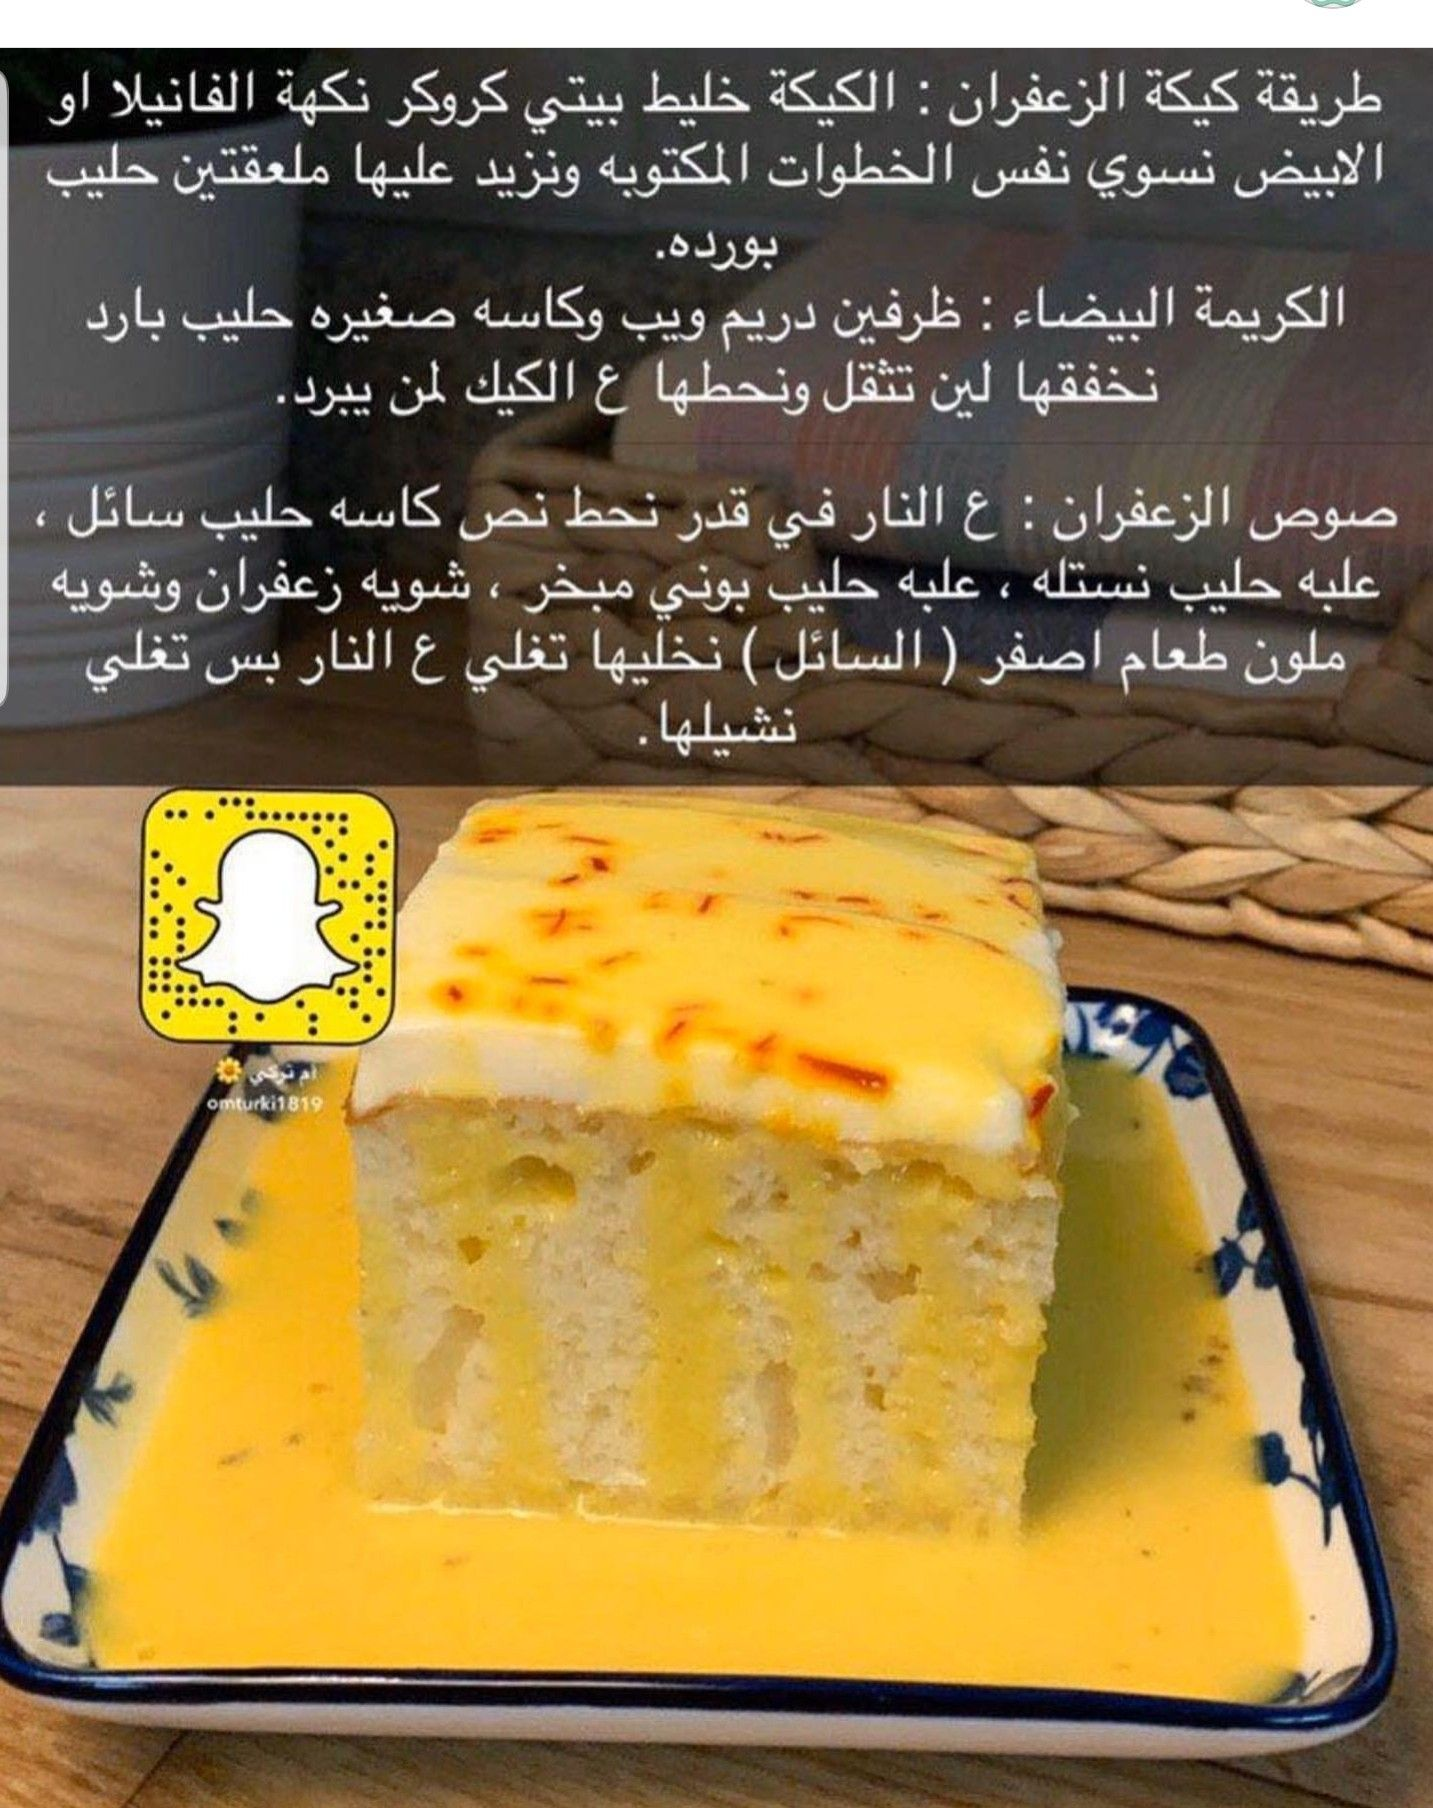 Pin By Asma On طبخات Yummy Food Dessert Cooking Recipes Desserts Helthy Food